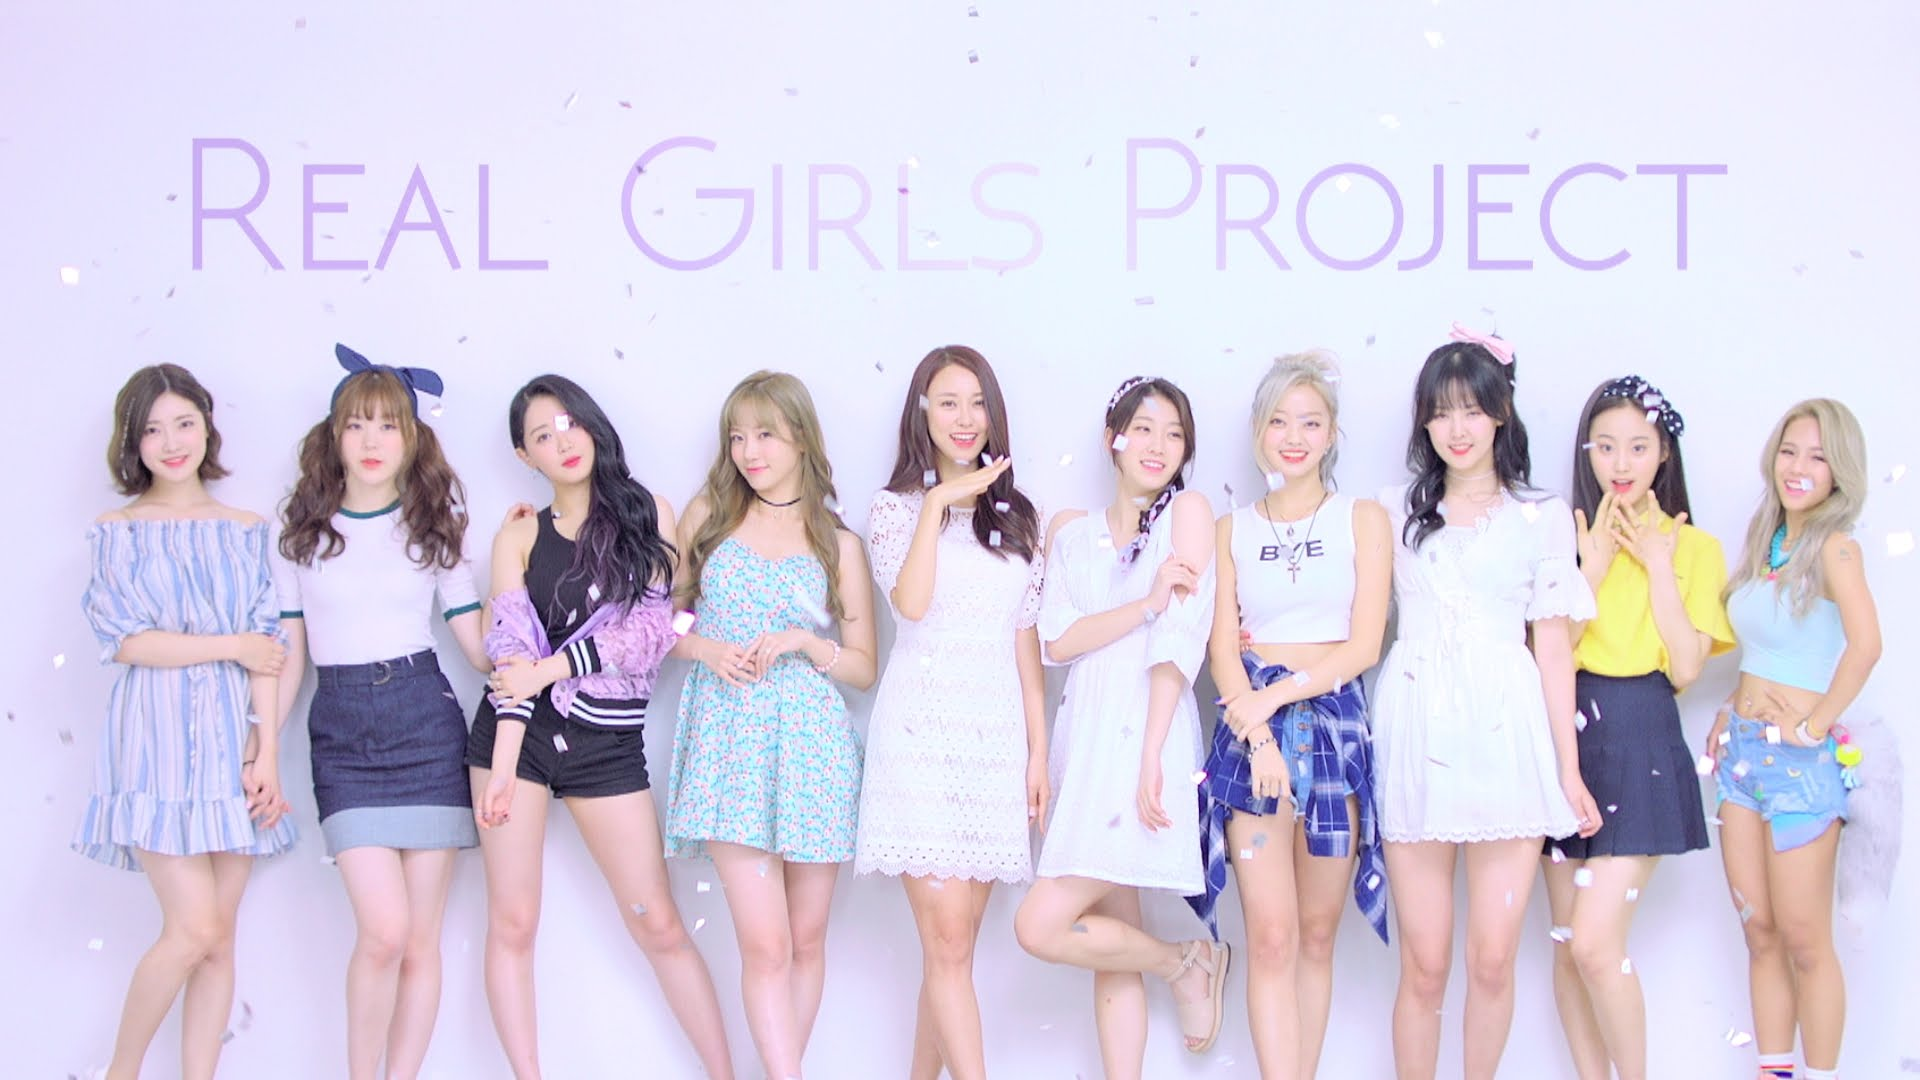 real girls project, real girls project debut, idol master, idol master kr, real girls project profile, sori, yukika, lee jeewon, oh yoohyun, lee suji, jin na young, hur youngjoo, mint, lee yeeun, coco, idol master finalist, Moon JiHee, Hur JoungJoo, Jung YeonJoo, Son HyunMi, Kang YeSeul, Ura Mayu, Kwon HaSeo, Kim YeeJin, Chun Jane